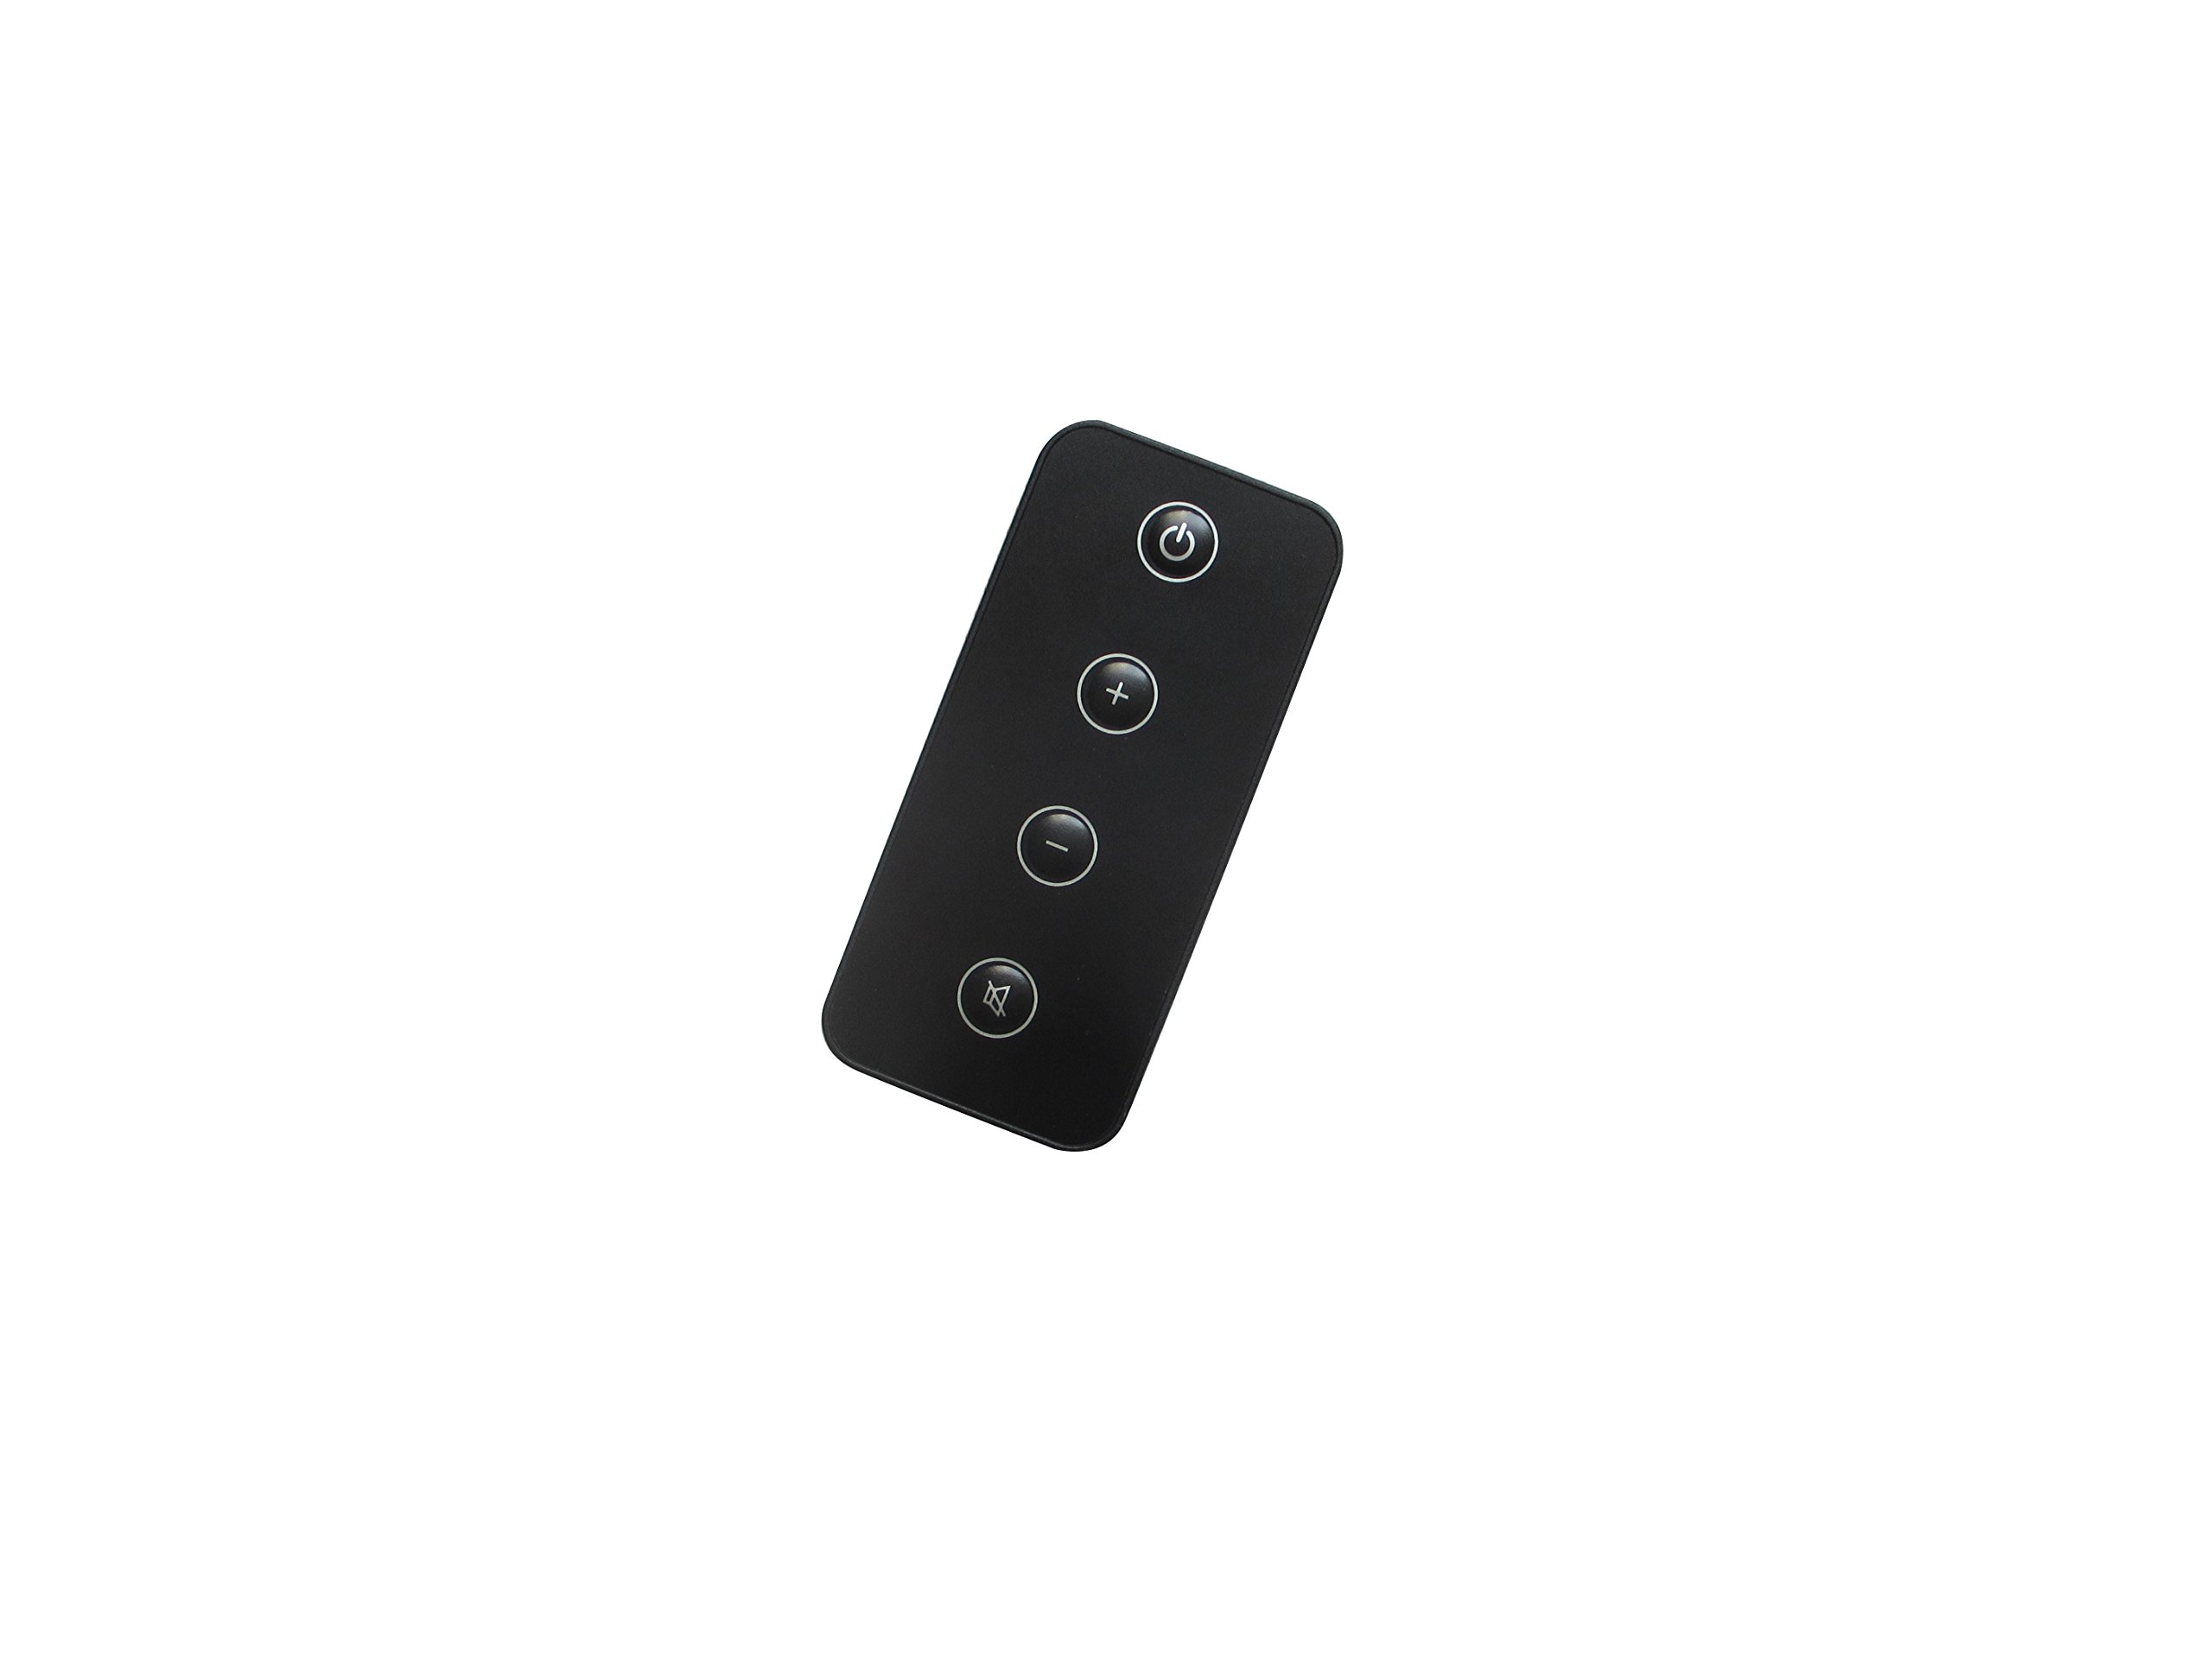 HCDZ Replacement Remote Control Fo Bose Cinemate GS Series ii Digital Home Theater Speaker System by HCDZ